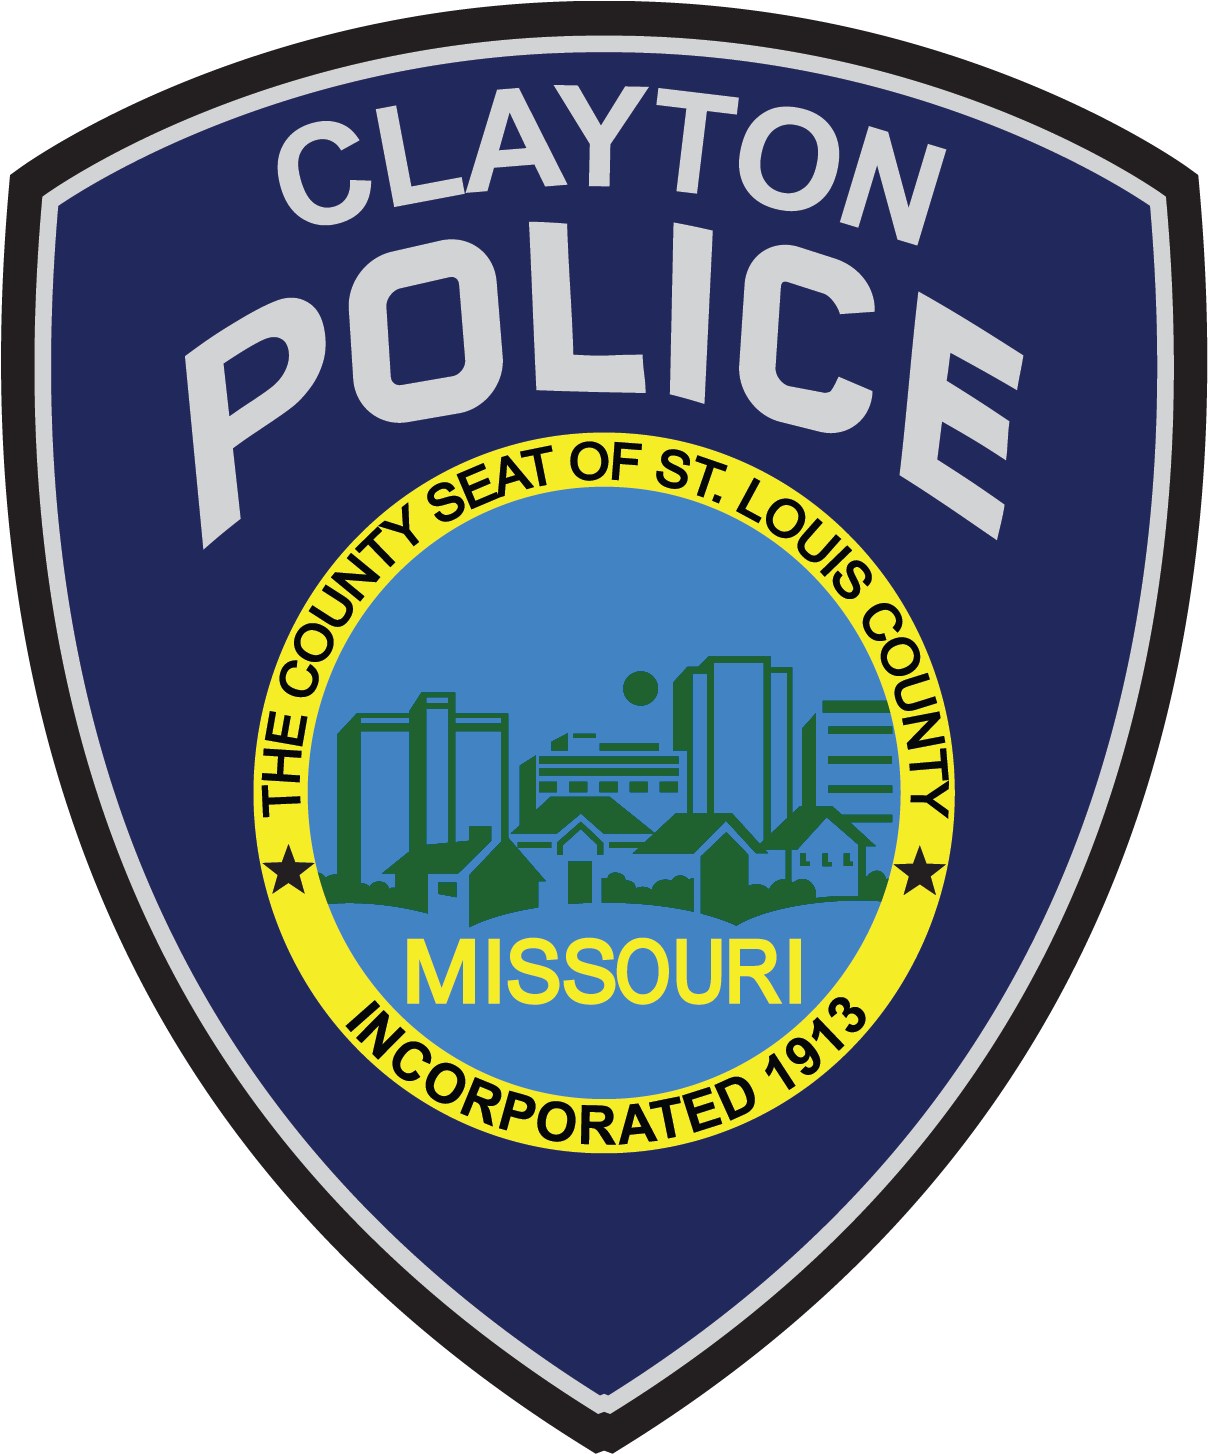 Clayton Police Department - 352 Crime and Safety updates